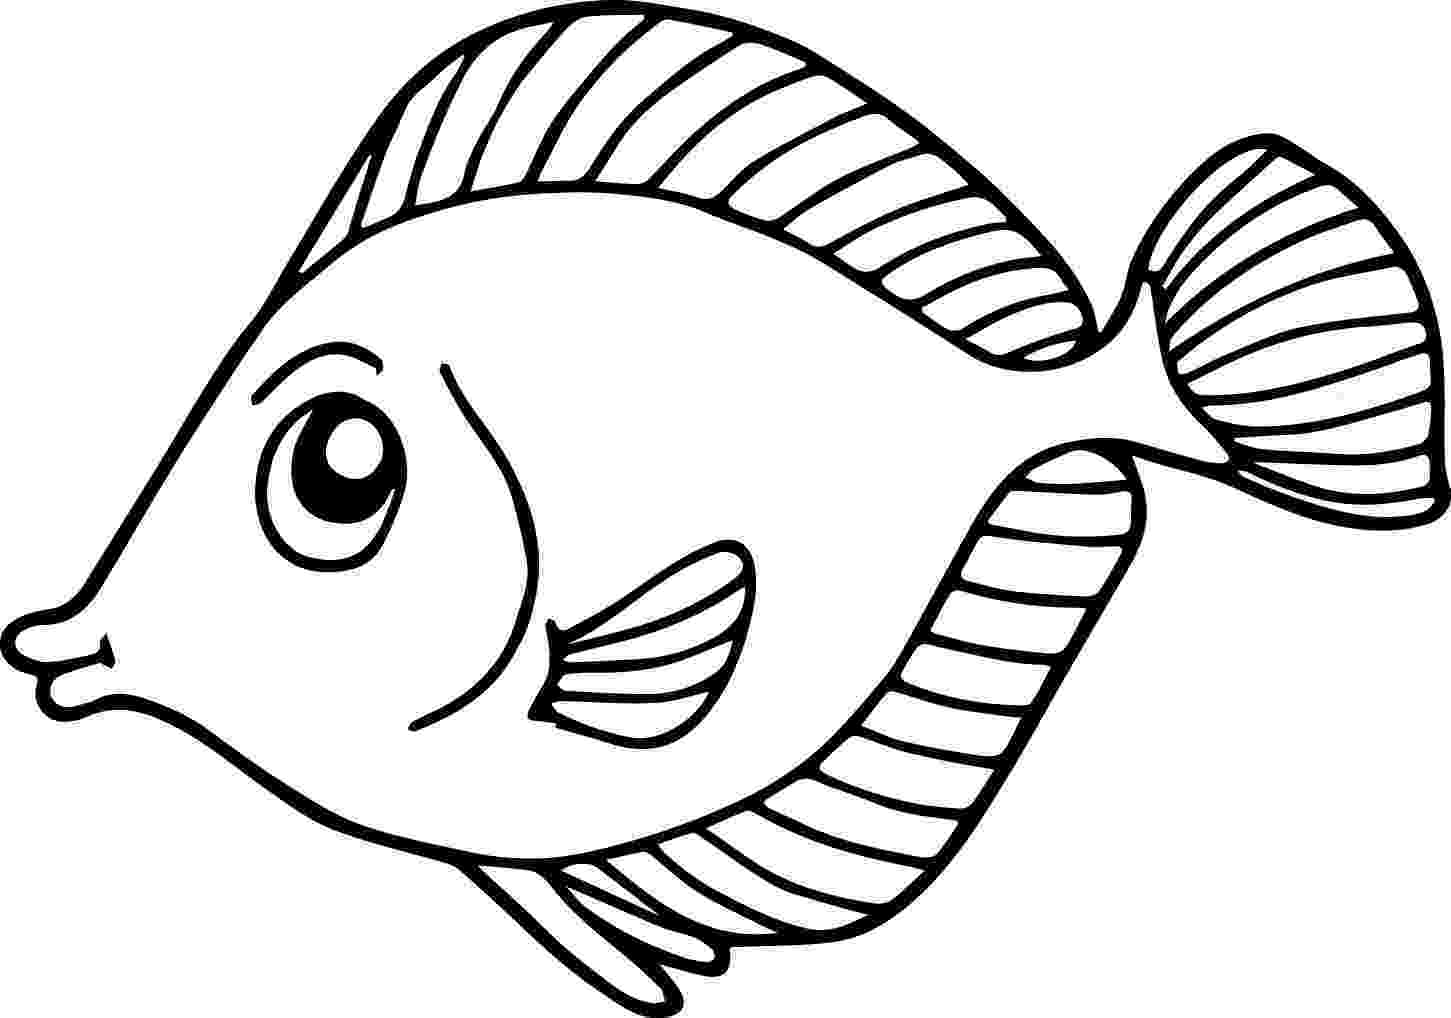 fishes coloring pages fish coloring pages for kids preschool and kindergarten pages coloring fishes